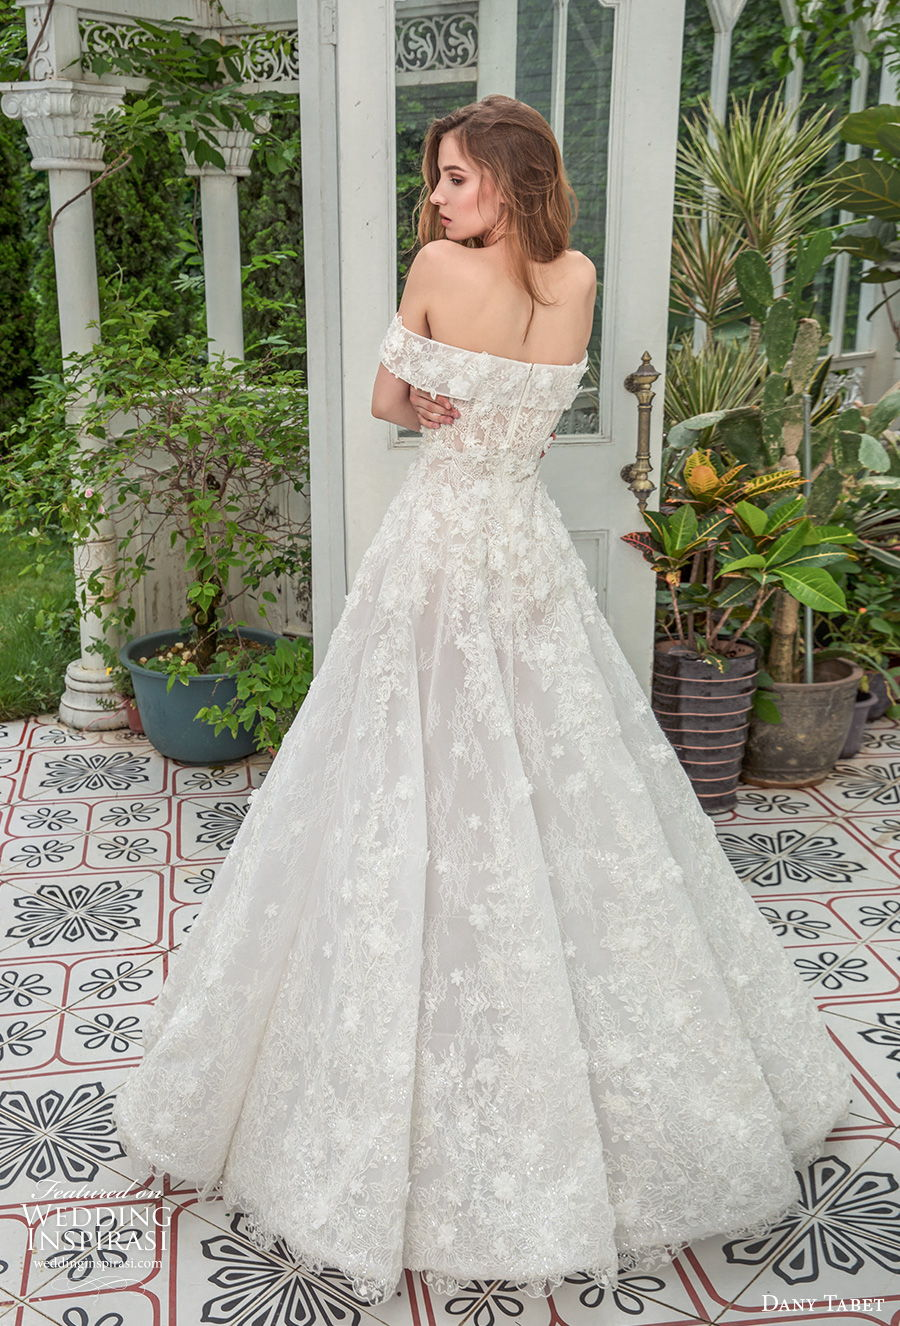 dany tabet 2021 emerge bridal off the shoulder sweetheart neckline full embellishment romantic a  line wedding dress mid back sweep train (12) bv